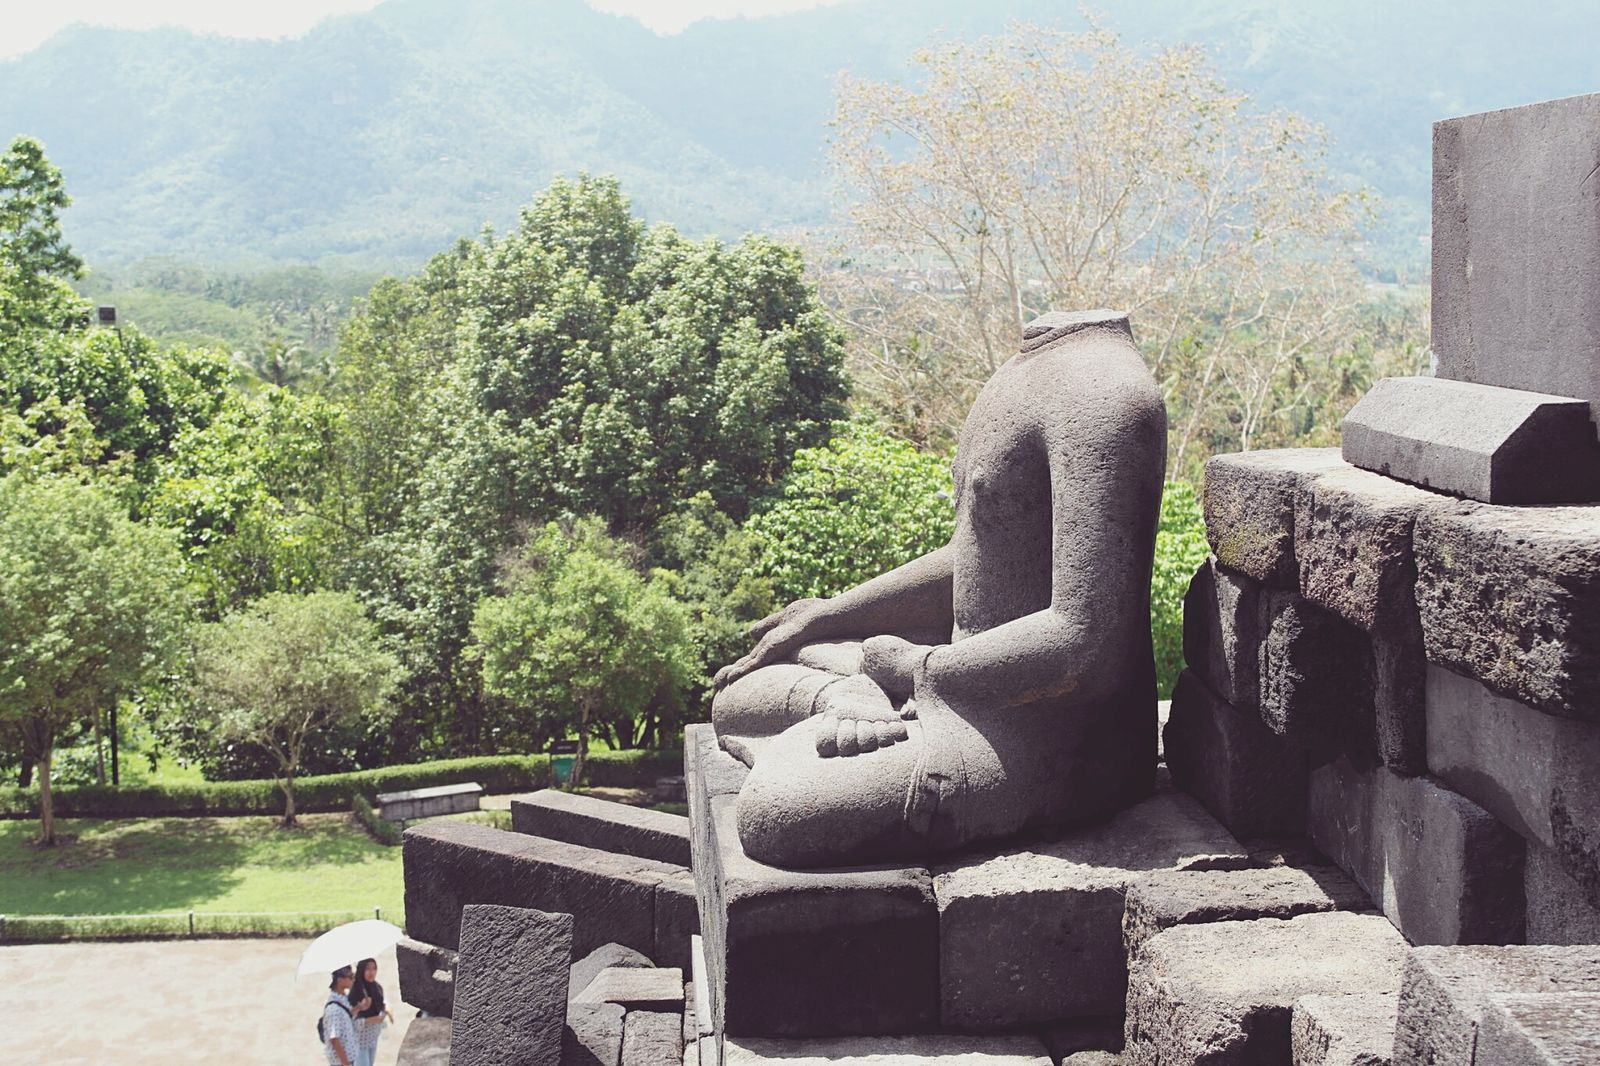 Hello World Holiday Trip Taking Photos Check This Out Throwback Trees Candiborobudur Magelang INDONESIA